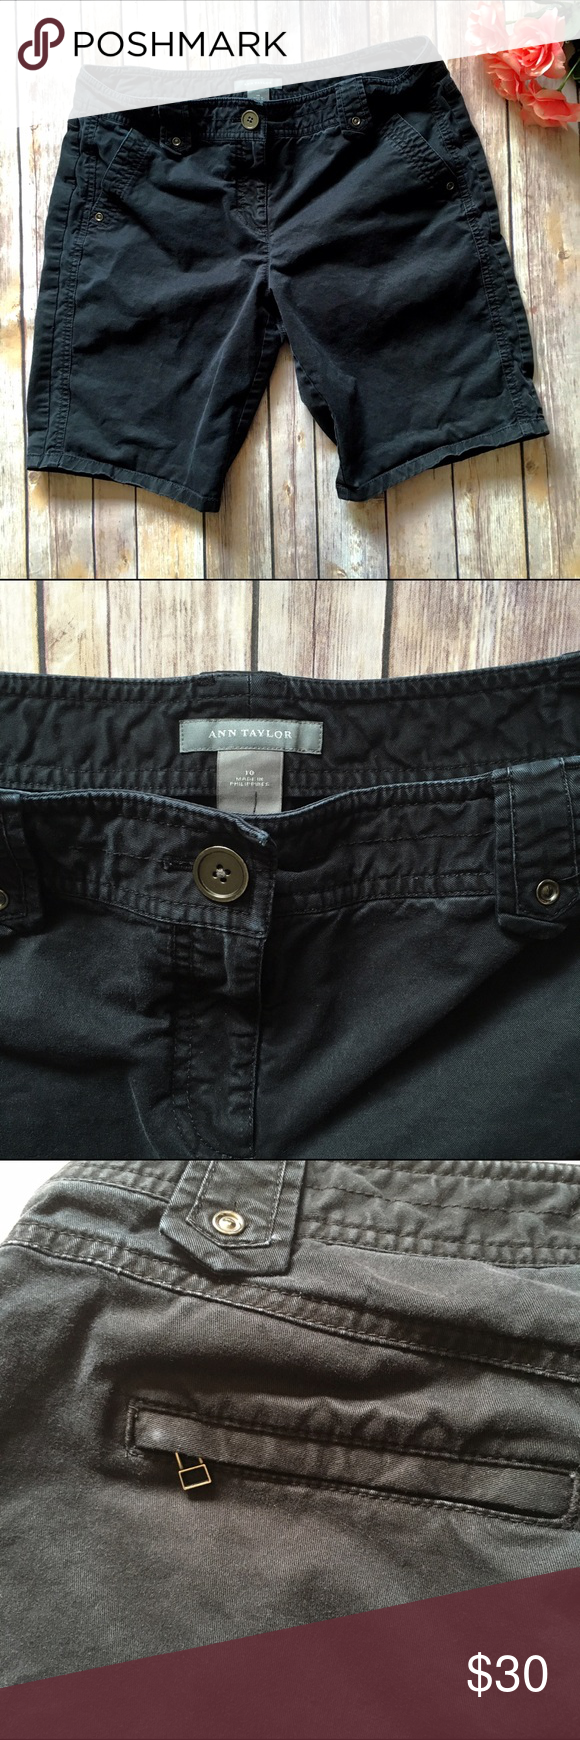 """❗️LAST CHANCE❗️ Ann Taylor Bermuda Shorts Take a summer stroll in these fabulous Ann Taylor black Bermuda shorts! Back zip pockets, button/zip fly. Waist measures approx. 17"""" across when laying flat, inseam approx. 10"""". Light fading, including a very small white fade mark on the back left hand pocket. Otherwise great condition, lots of life left! 🤗  🚫NO TRADES 🚫NO OFF SITE  ✅POSH RULES ONLY ✅DOG FRIENDLY, SMOKE FREE HOME ✅FAIR OFFERS 🔵 PLEASE USE OFFER BUTTON!  ❓ASK IN THE COMMENTS…"""